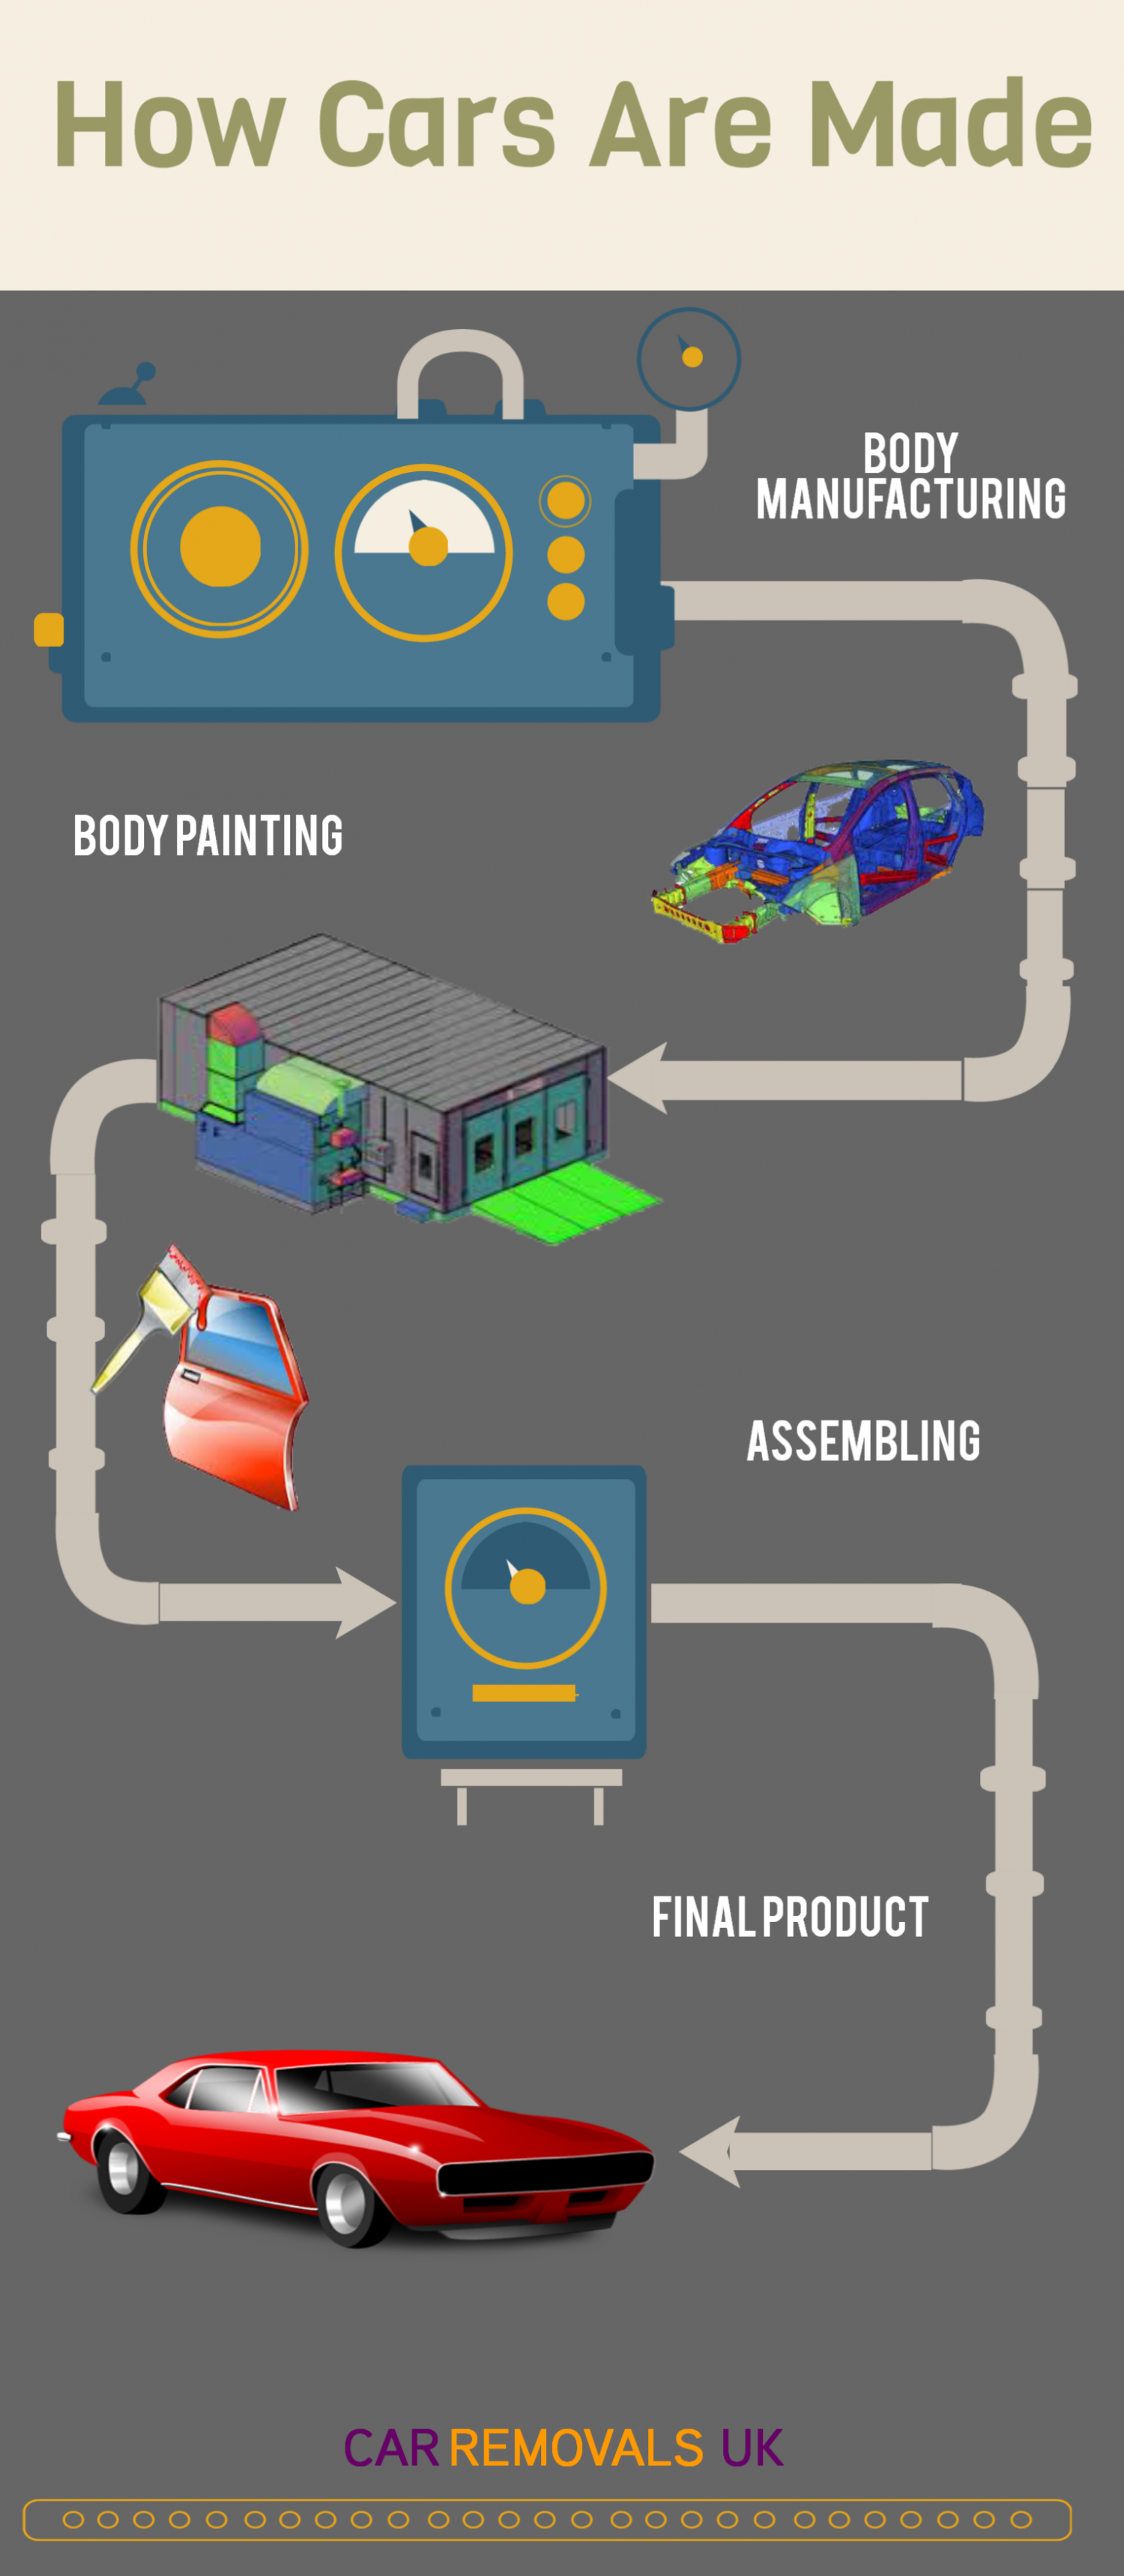 How Cars Are Made Infographic